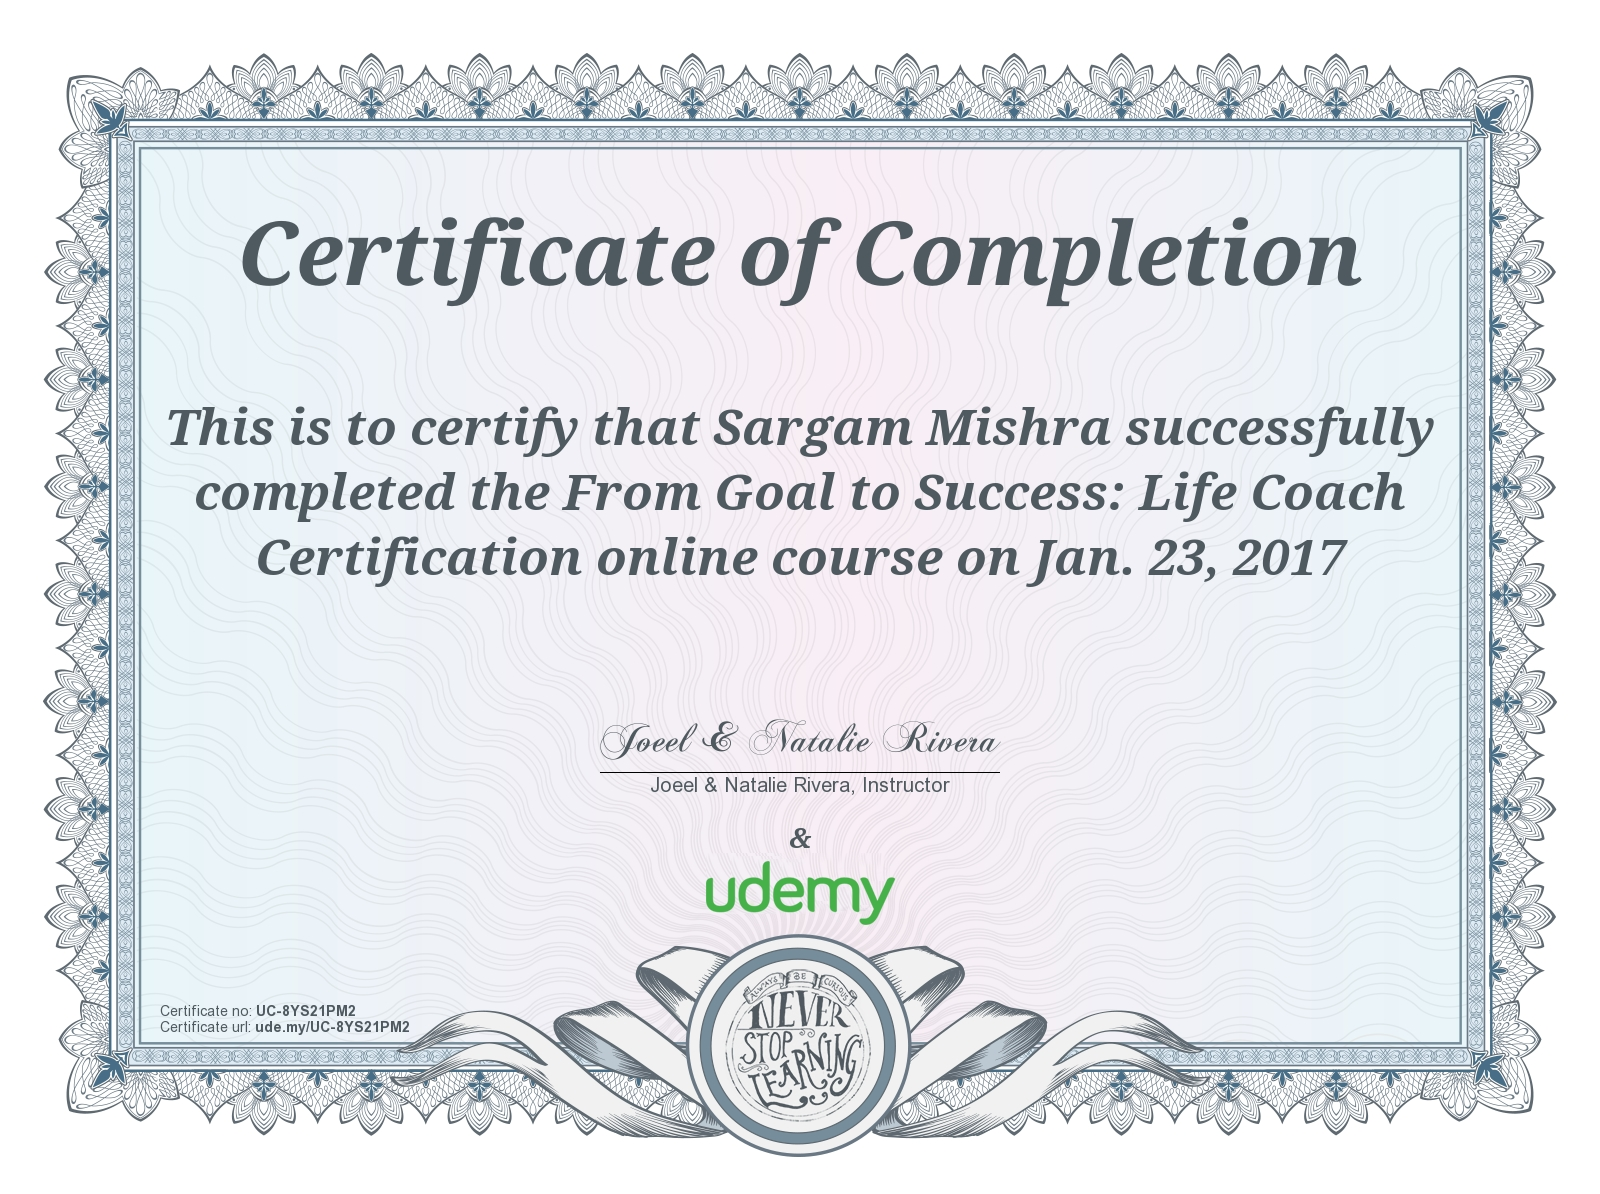 Goal to success life coach certificate sargam mishra published february 15 2017 at 1600 1194 in 1betcityfo Images